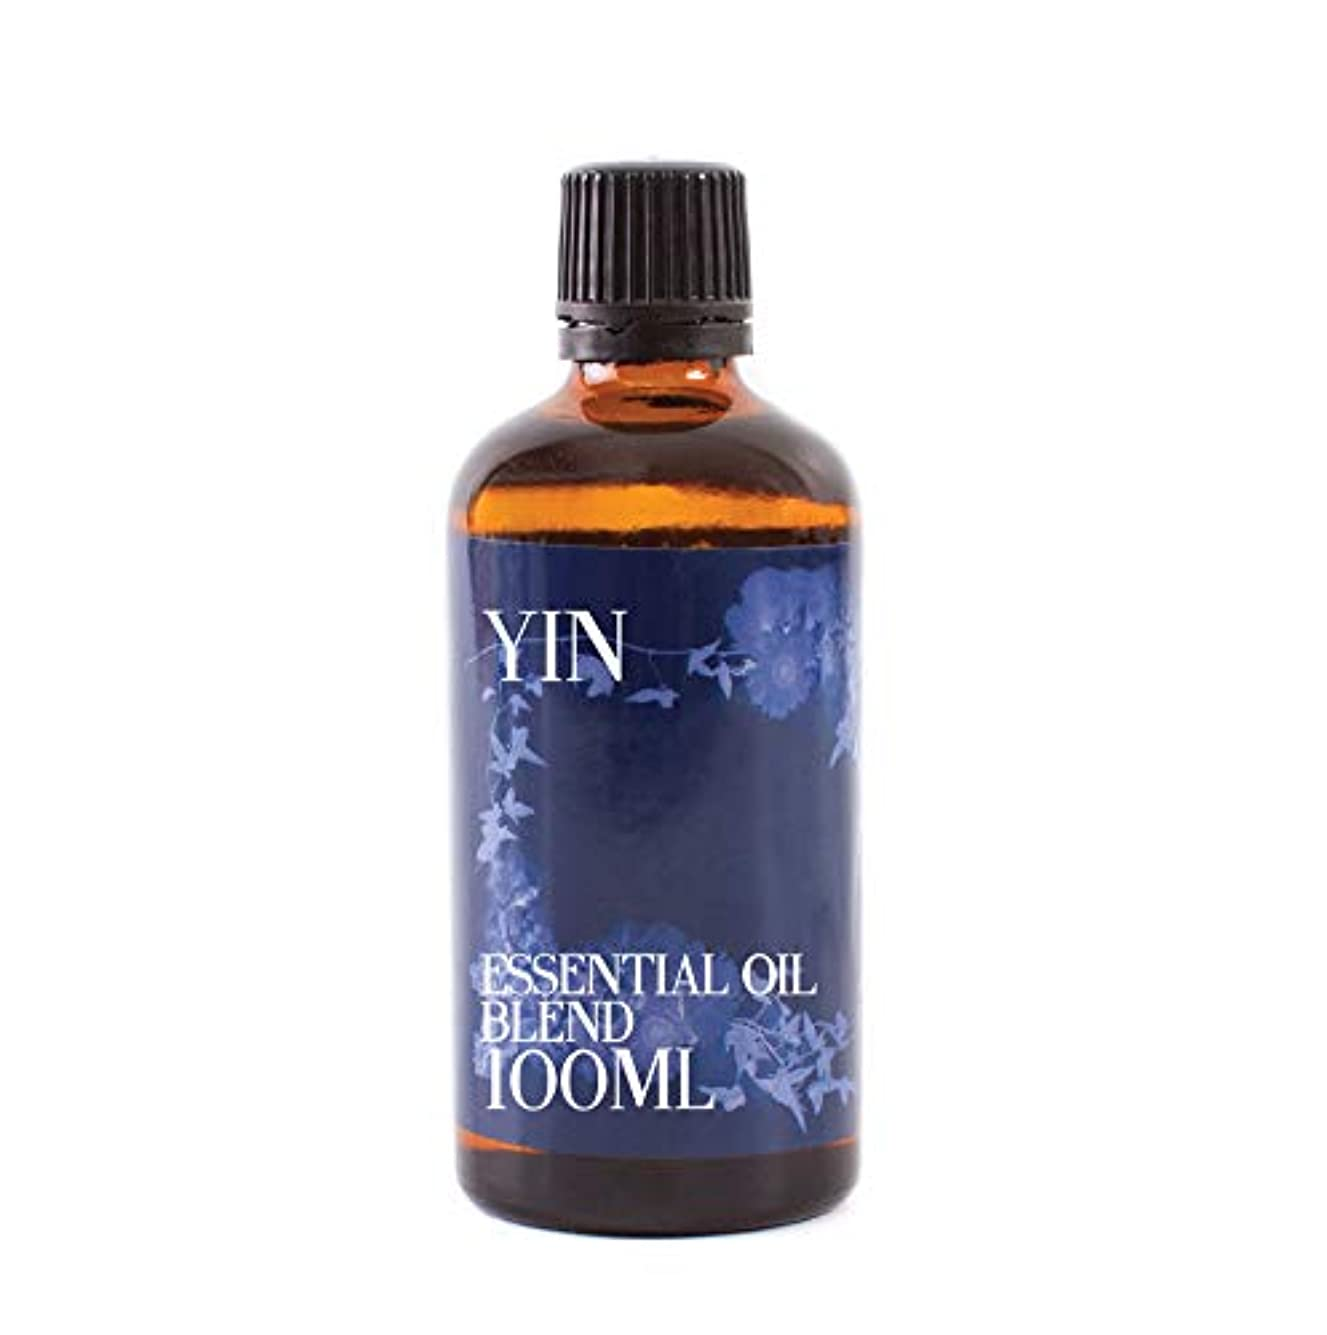 Mystix London | Yin Essential Oil Blend - 100ml